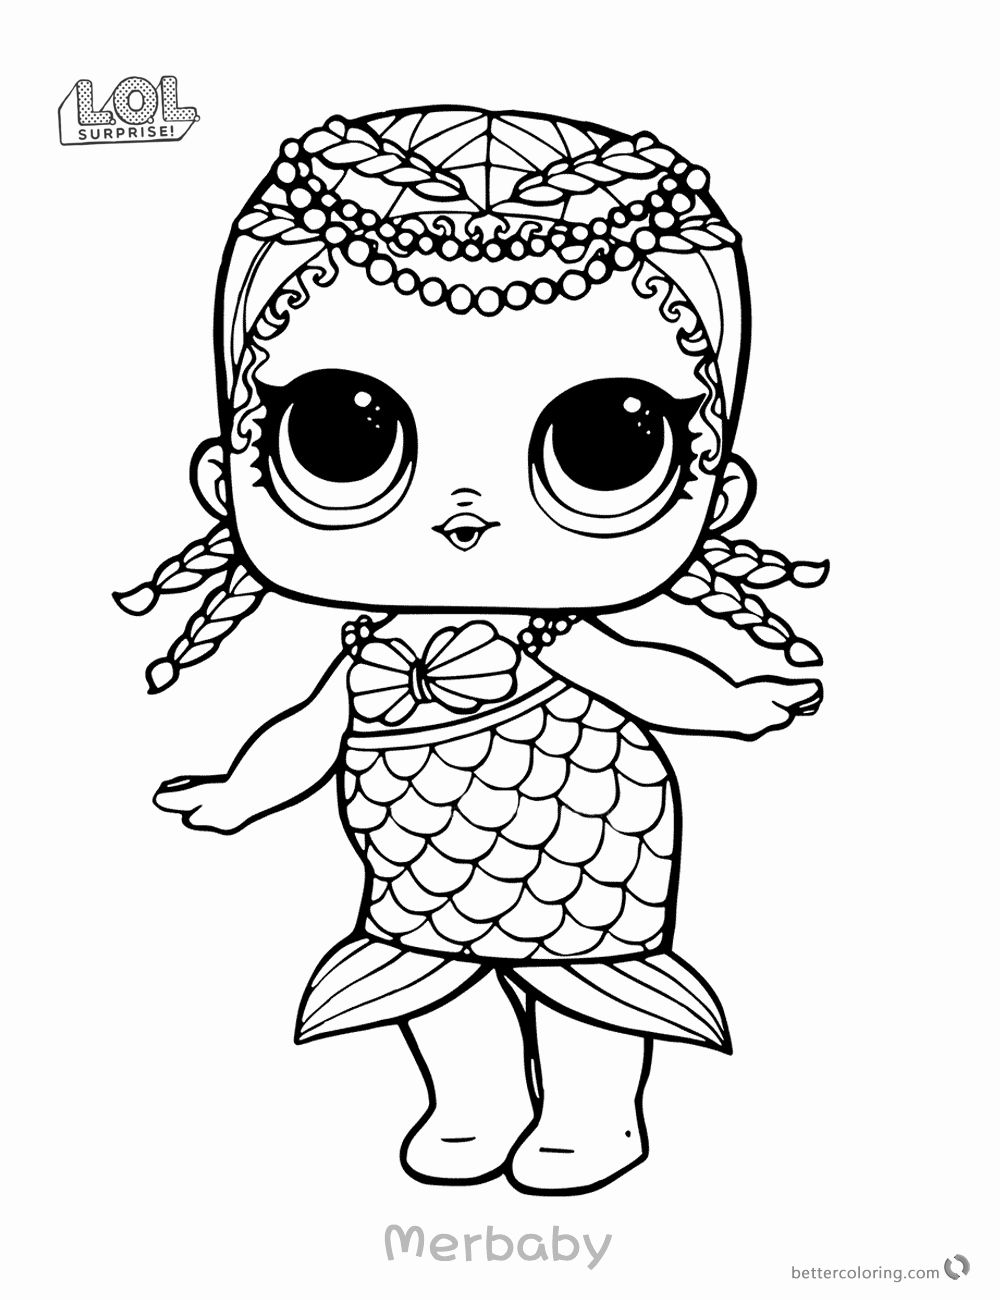 Lol Surprise Doll Coloring Pages Printable Elegant Mermaid Lol Surprise Doll Coloring Pages Merb In 2020 Unicorn Coloring Pages Mermaid Coloring Pages Mermaid Coloring